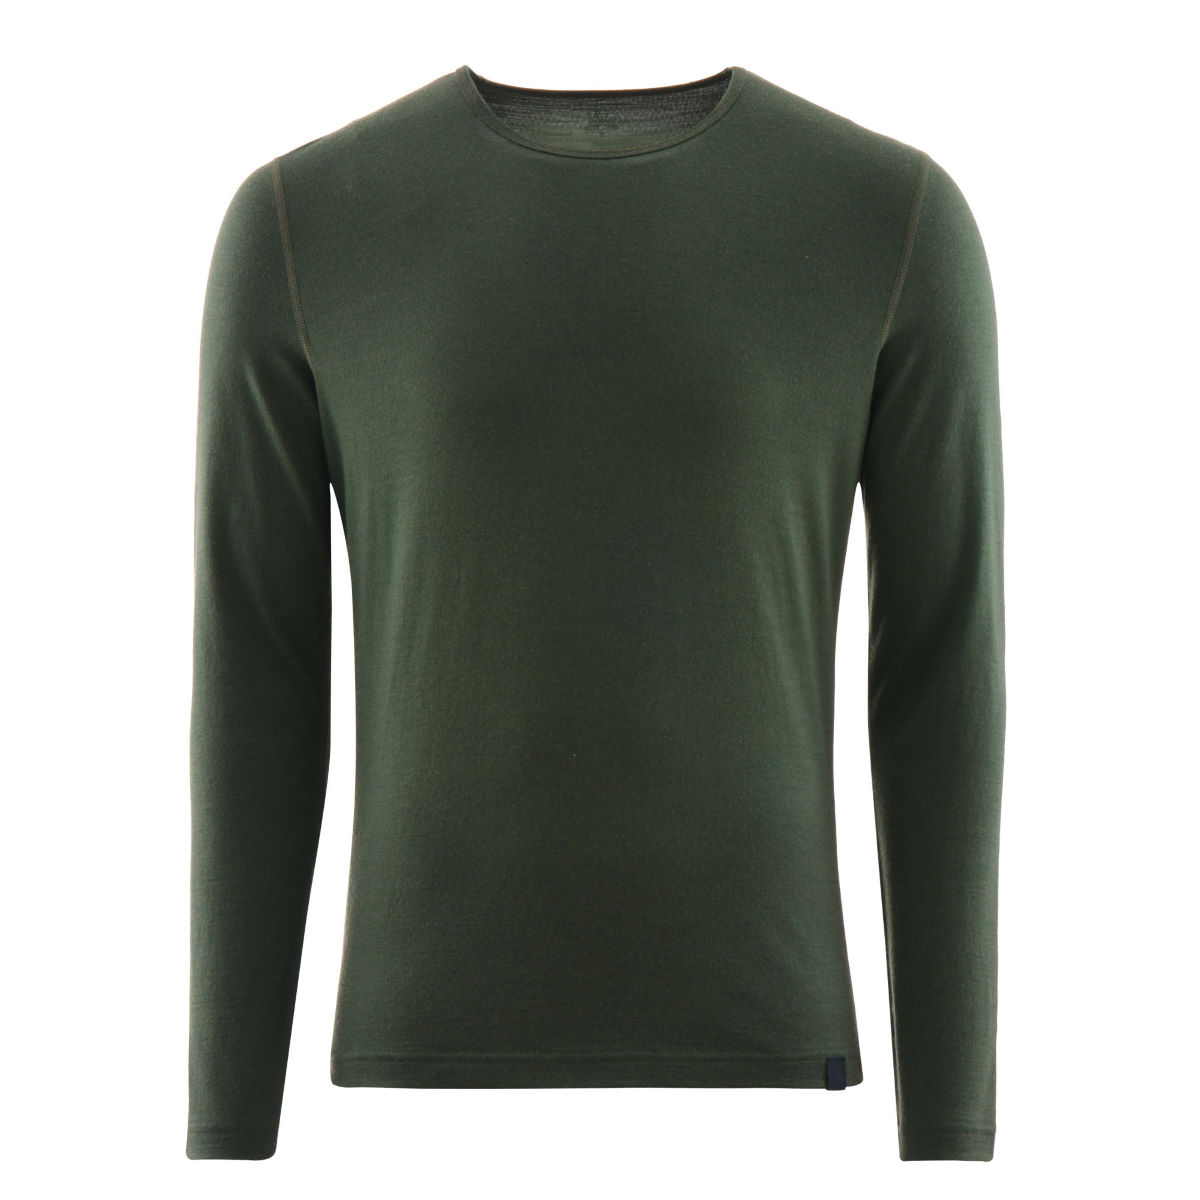 Image of Fohn Merino Long Sleeve Baselayer (200) Base Layers